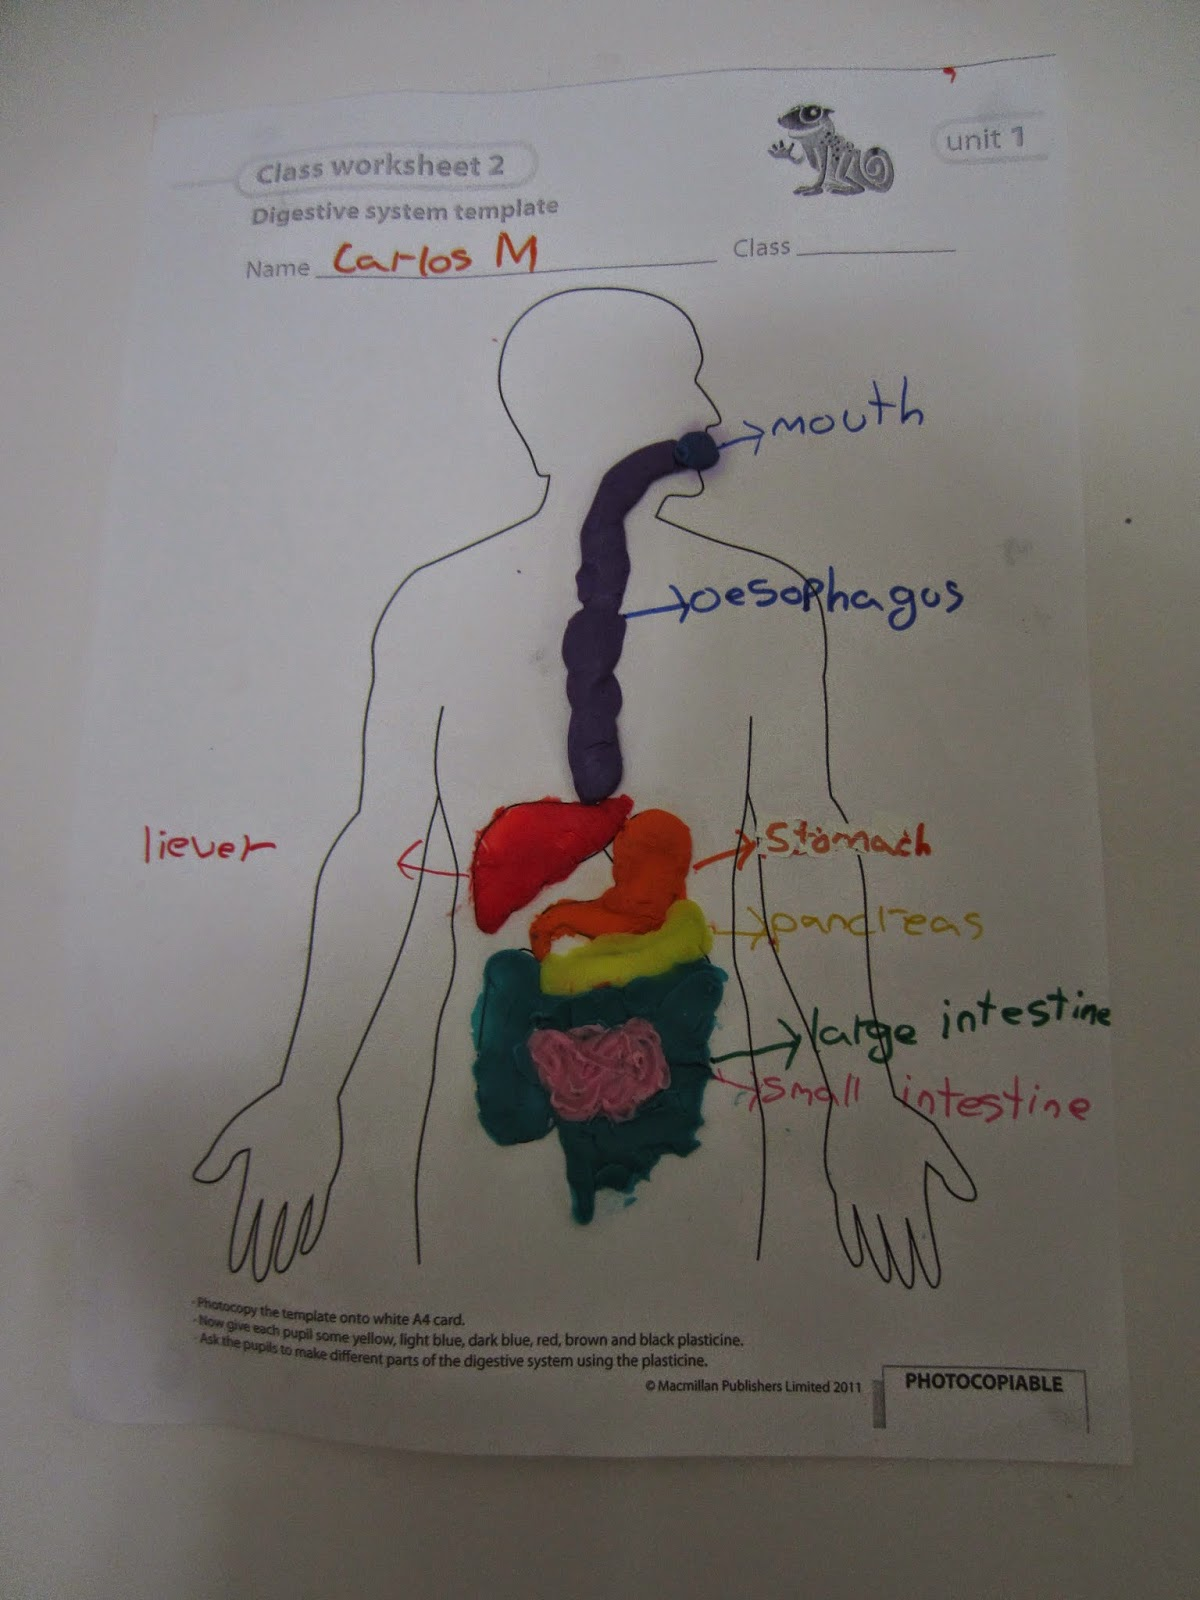 excretory system project Melody projects delhi biology models math models it shows the excretory system using bottlesthe 2d model decently pasted on a sheet with handmade colored.